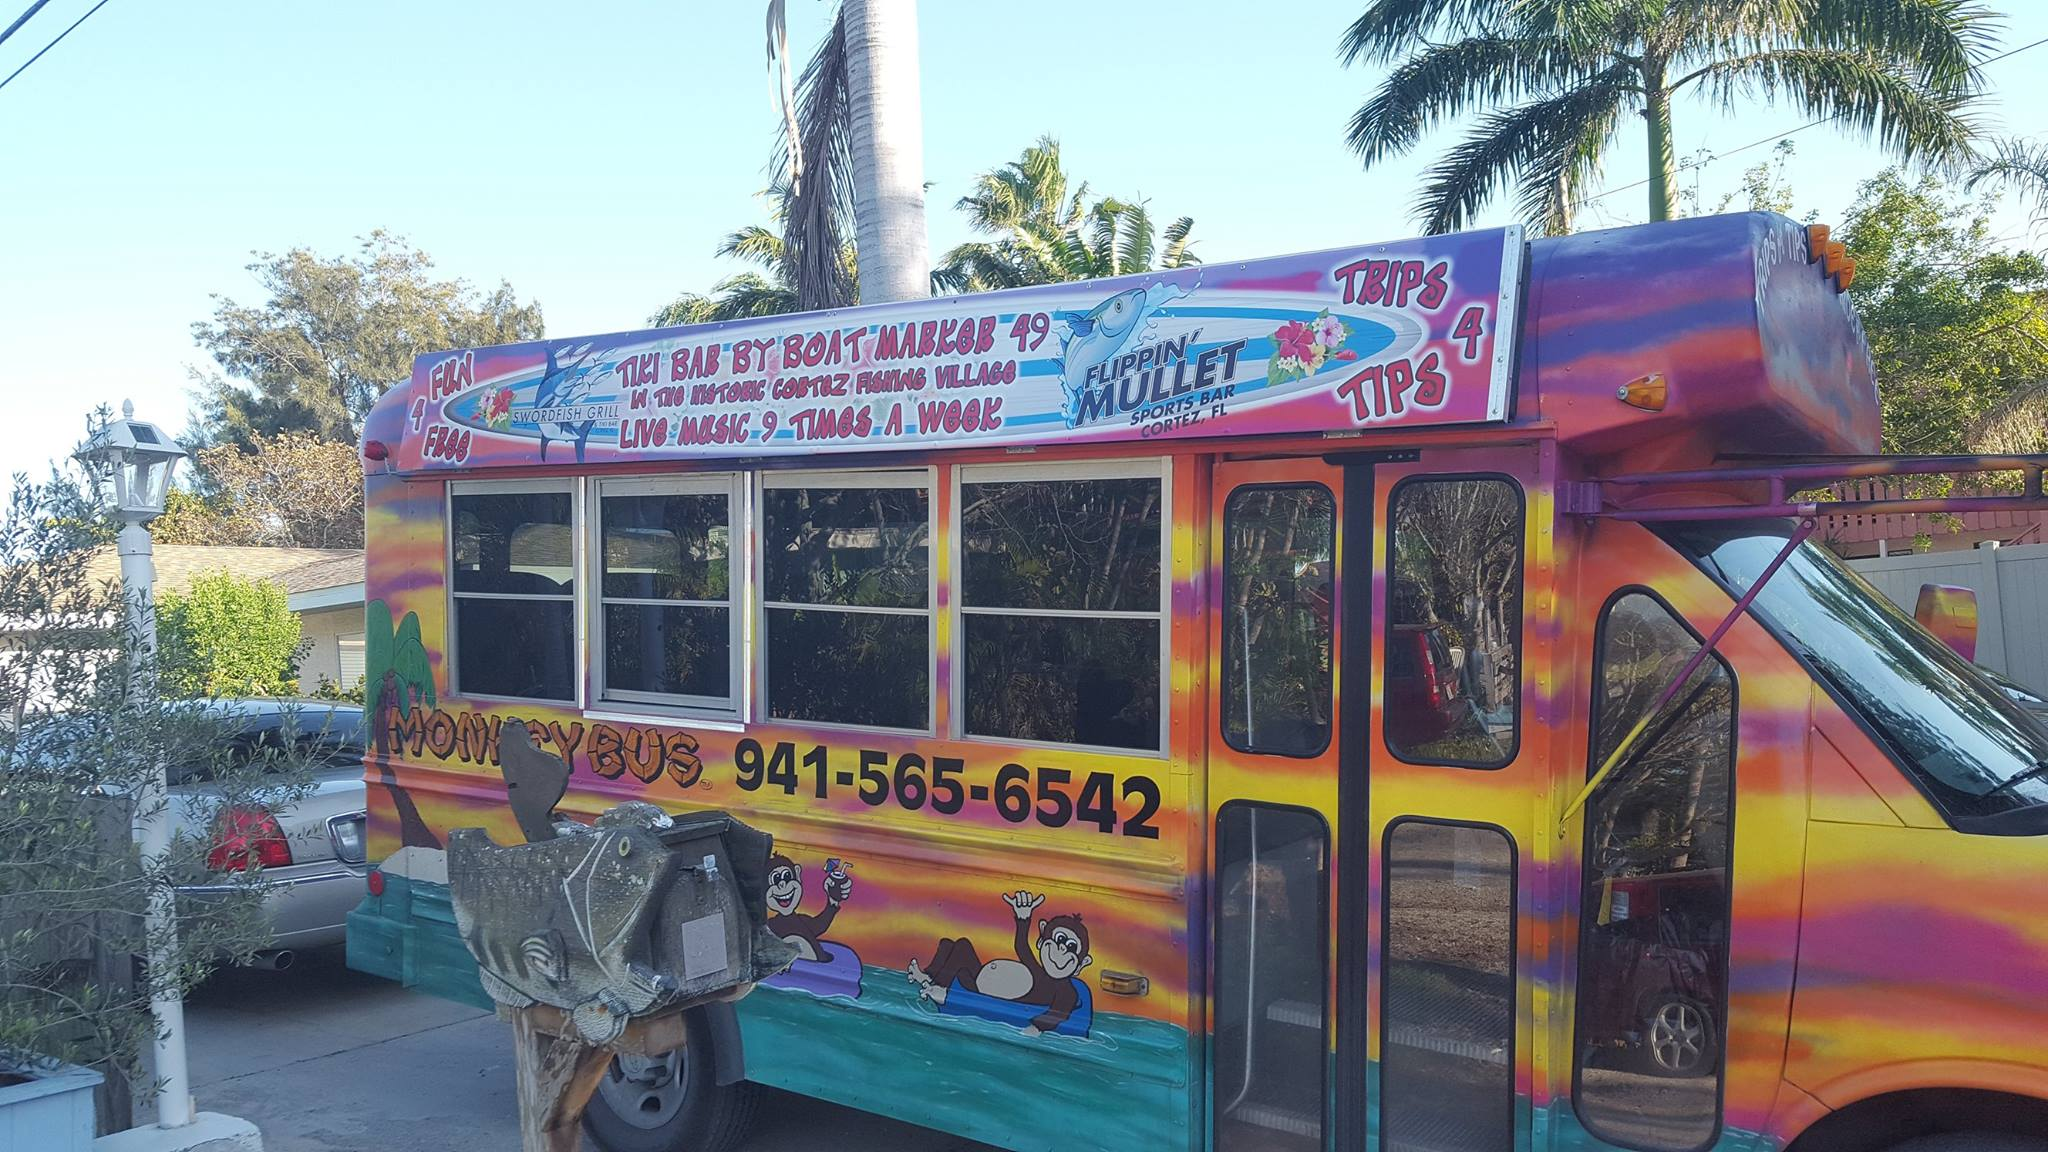 The Monkey Bus offers Free Transportation on Anna Maria Island and beyond!